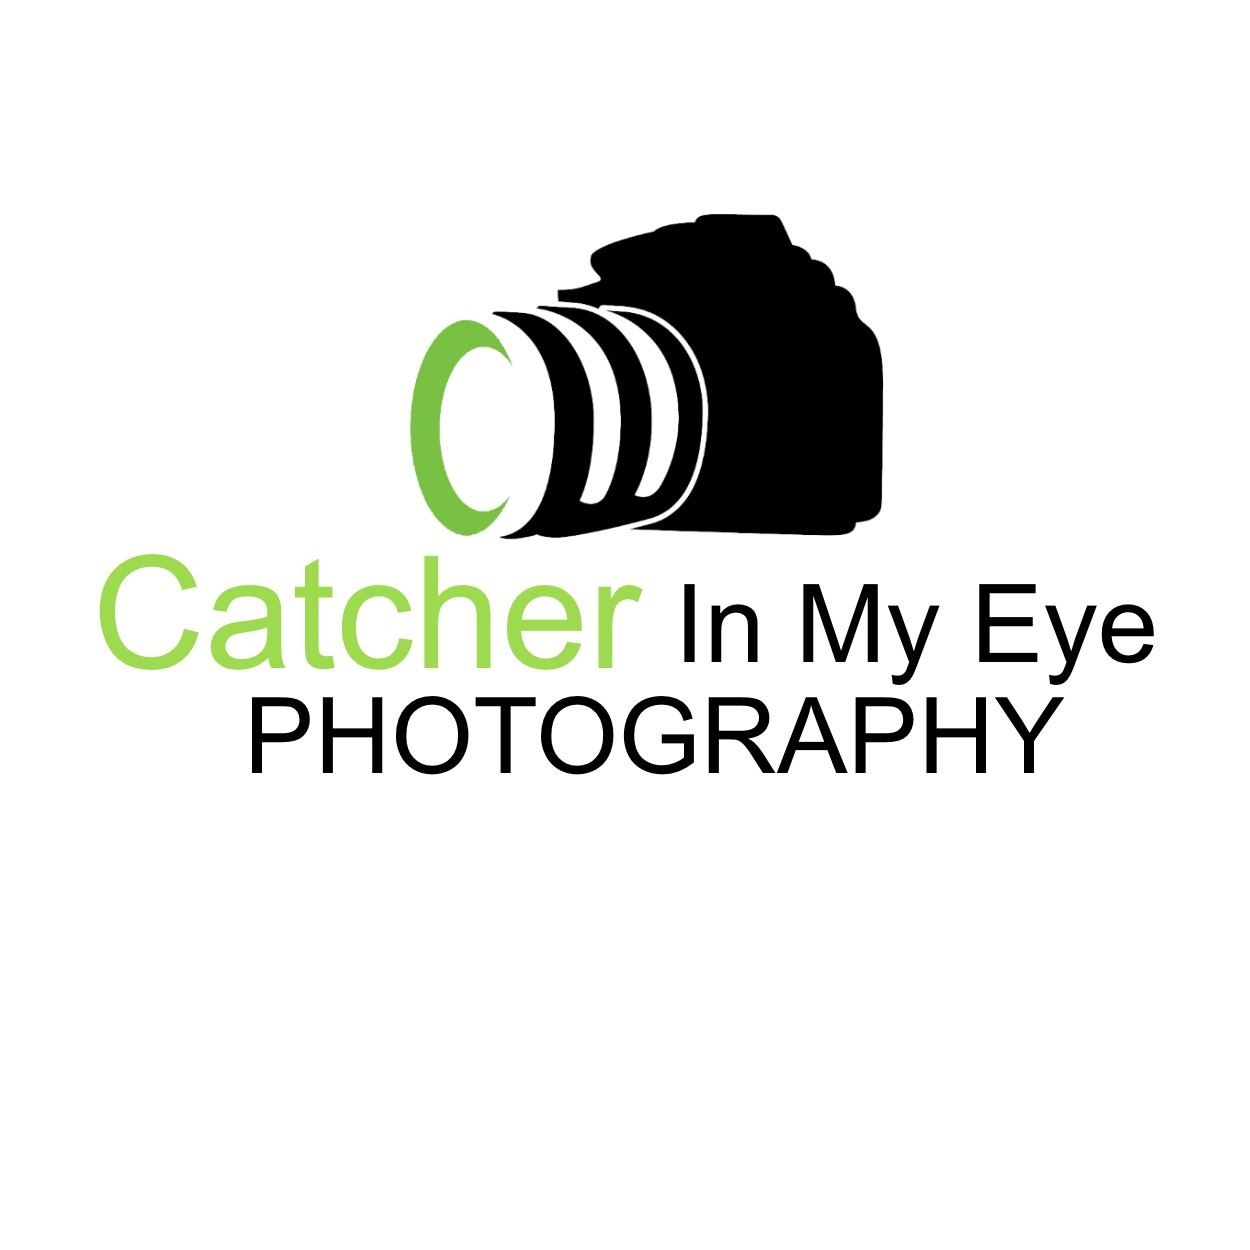 ... (Design #1519673) submitted to Photography Logo/ Watermark (Closed